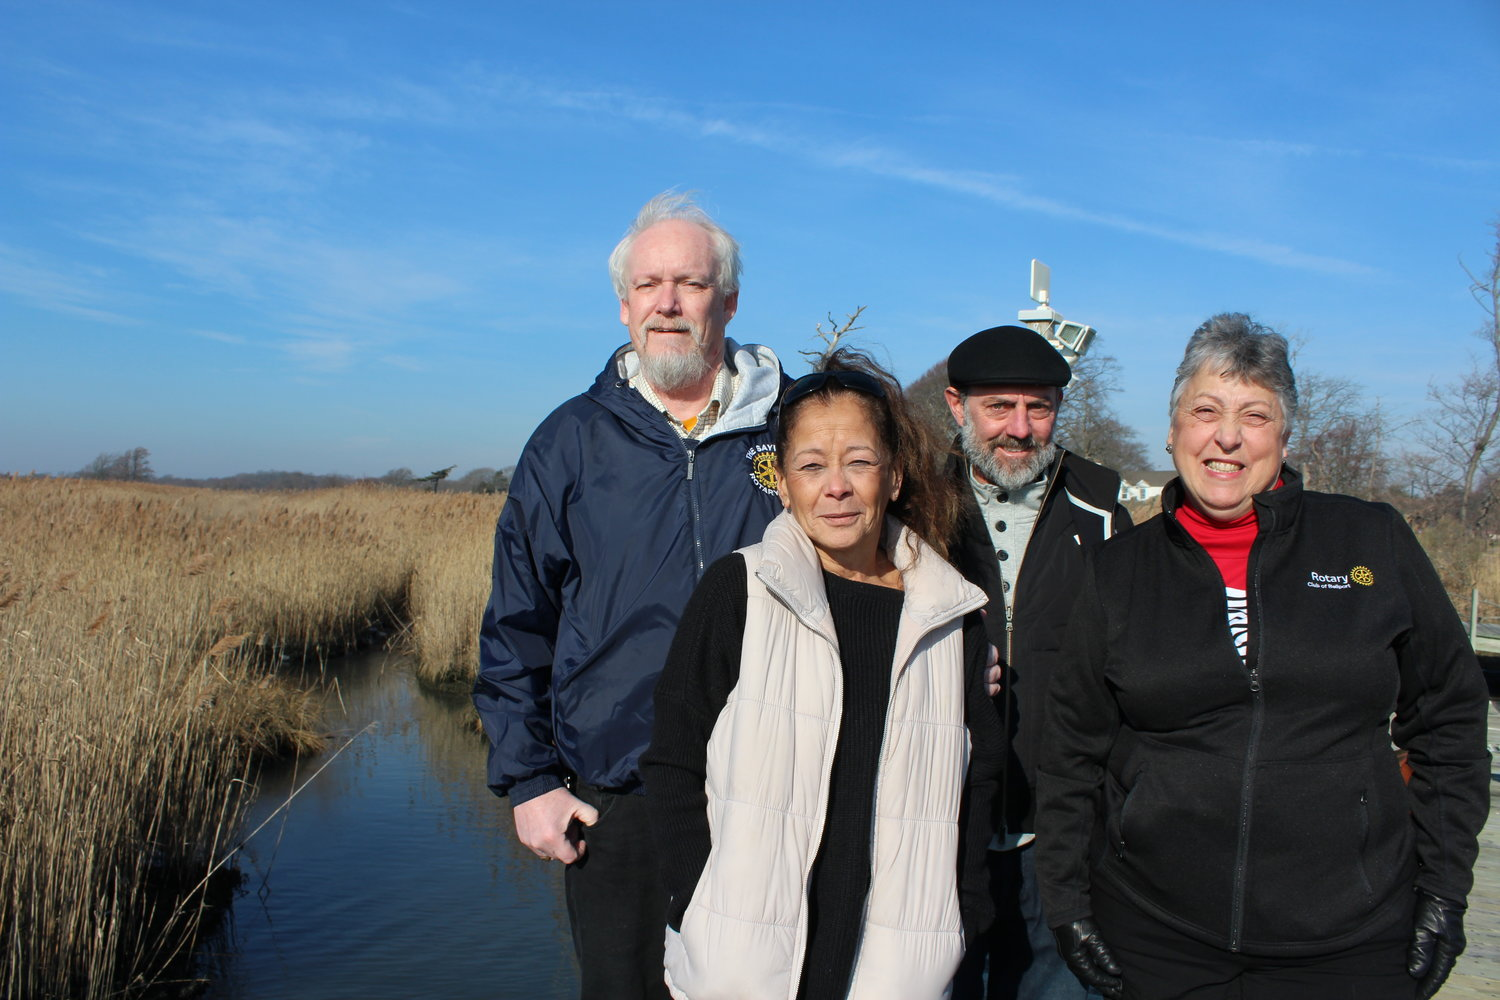 Rotary Club presidents Bob Draffin (Sayville), Liz Mayott (Islip), Brian McAuliff (Patchogue) and Lorraine Kuehn (incoming Bellport) are teaming up to work on environmental projects this year with club resources.